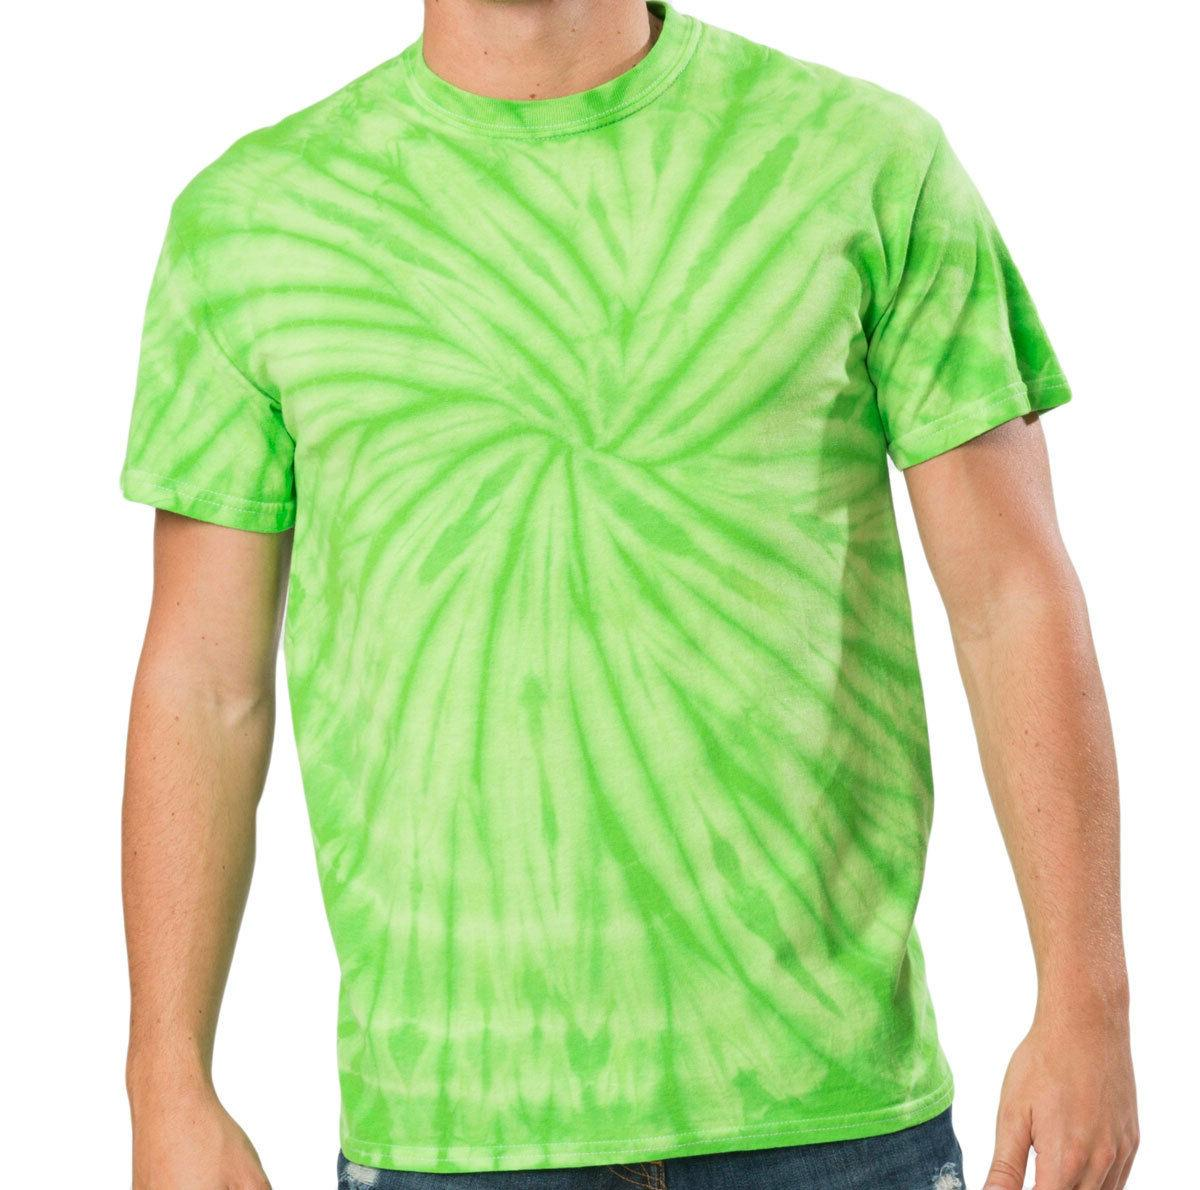 T-Shirts Tie Dye Style Kids and Adult Cotton 5.3